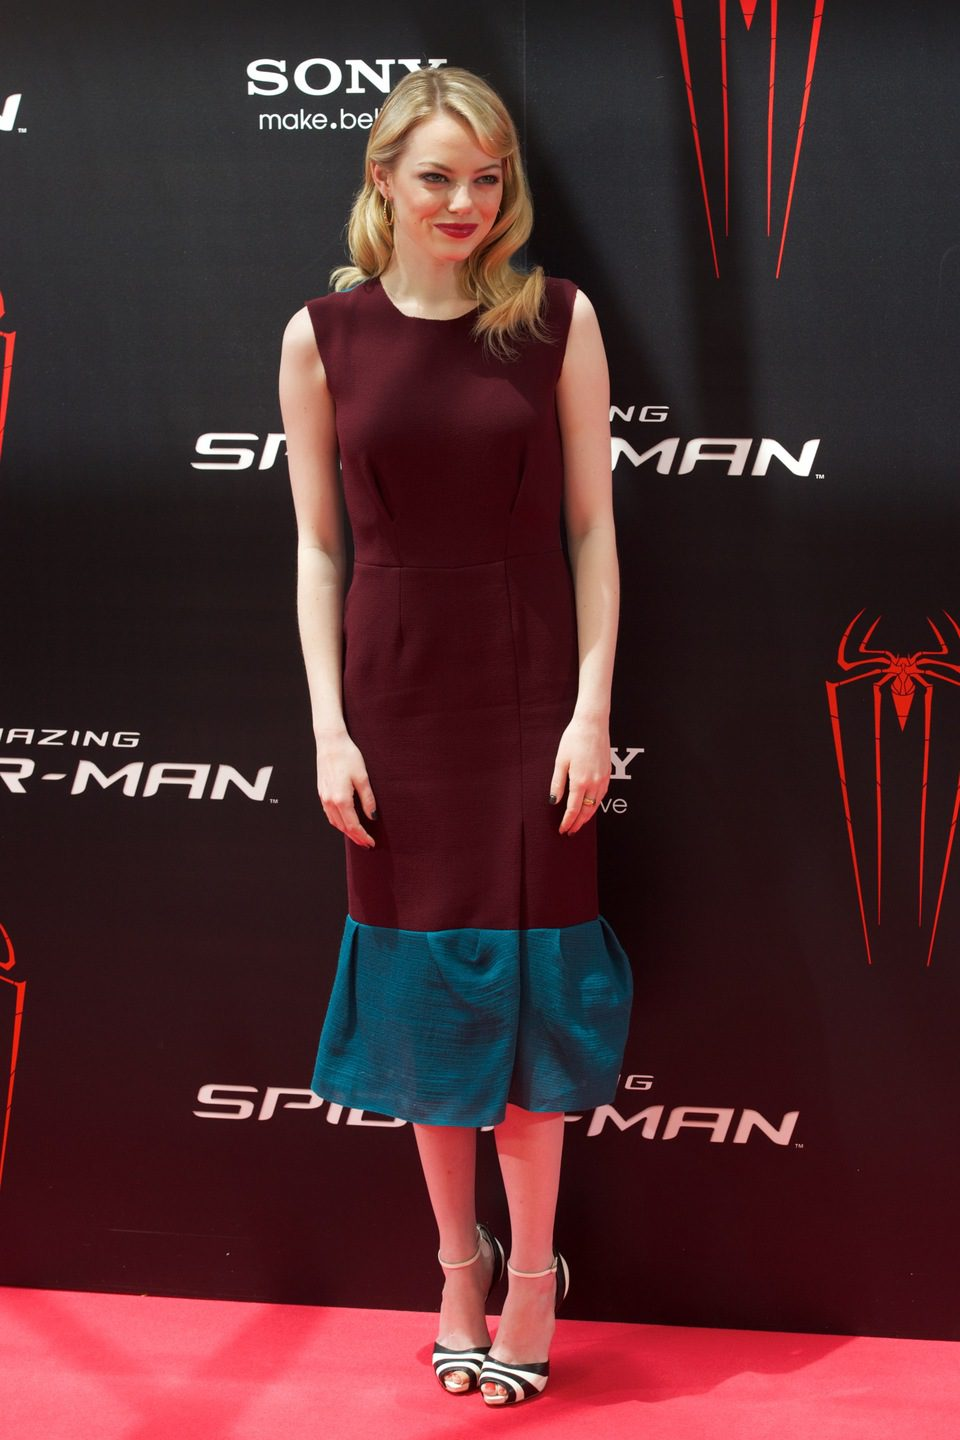 Emma Stone presenta 'The Amazing Spider-Man' en Madrid